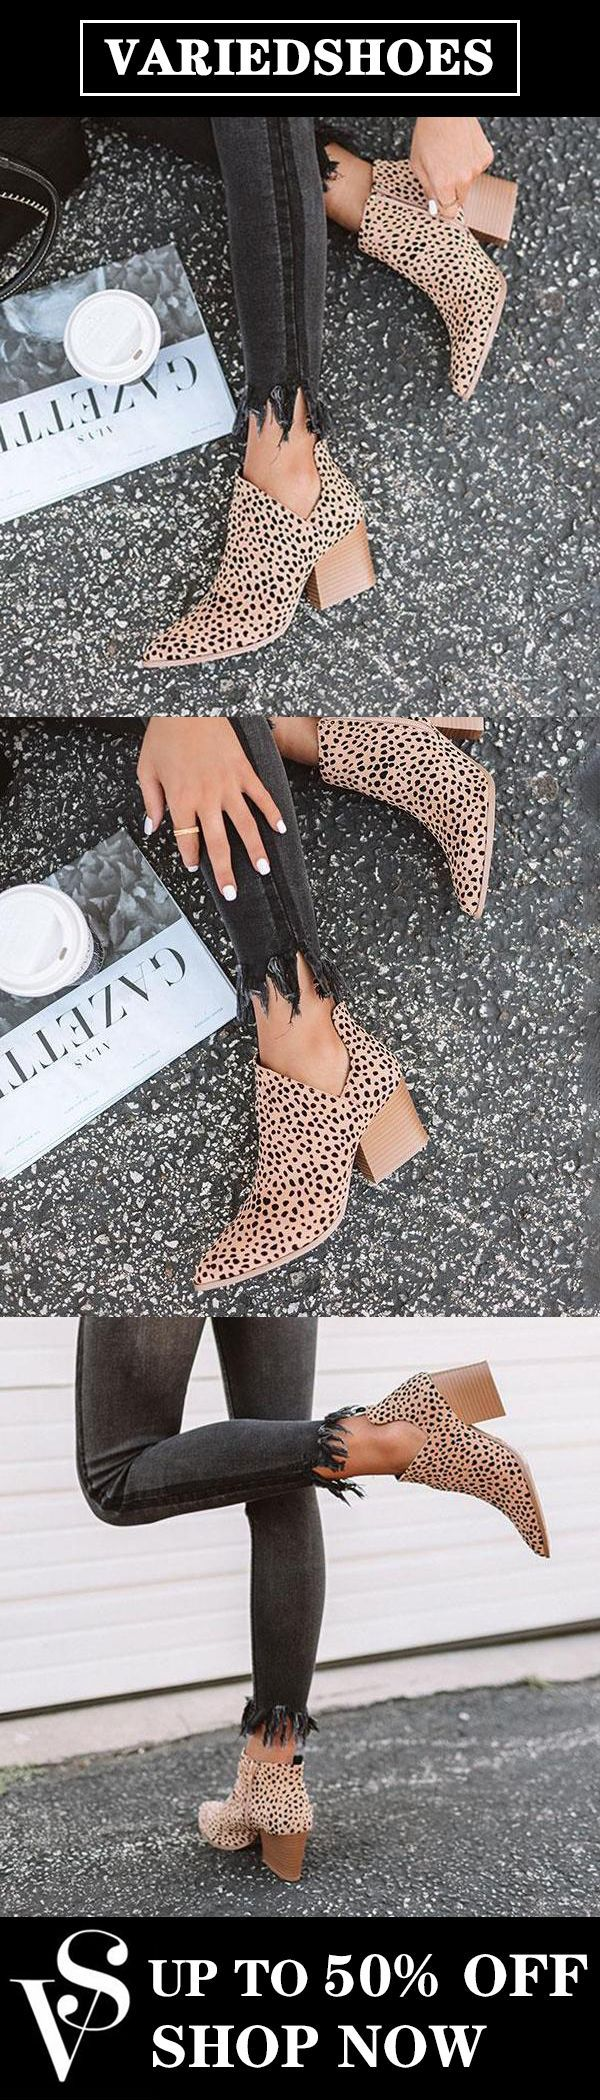 Fashion Stylish Pointed Toe Leopard Booties – Casual shoe style